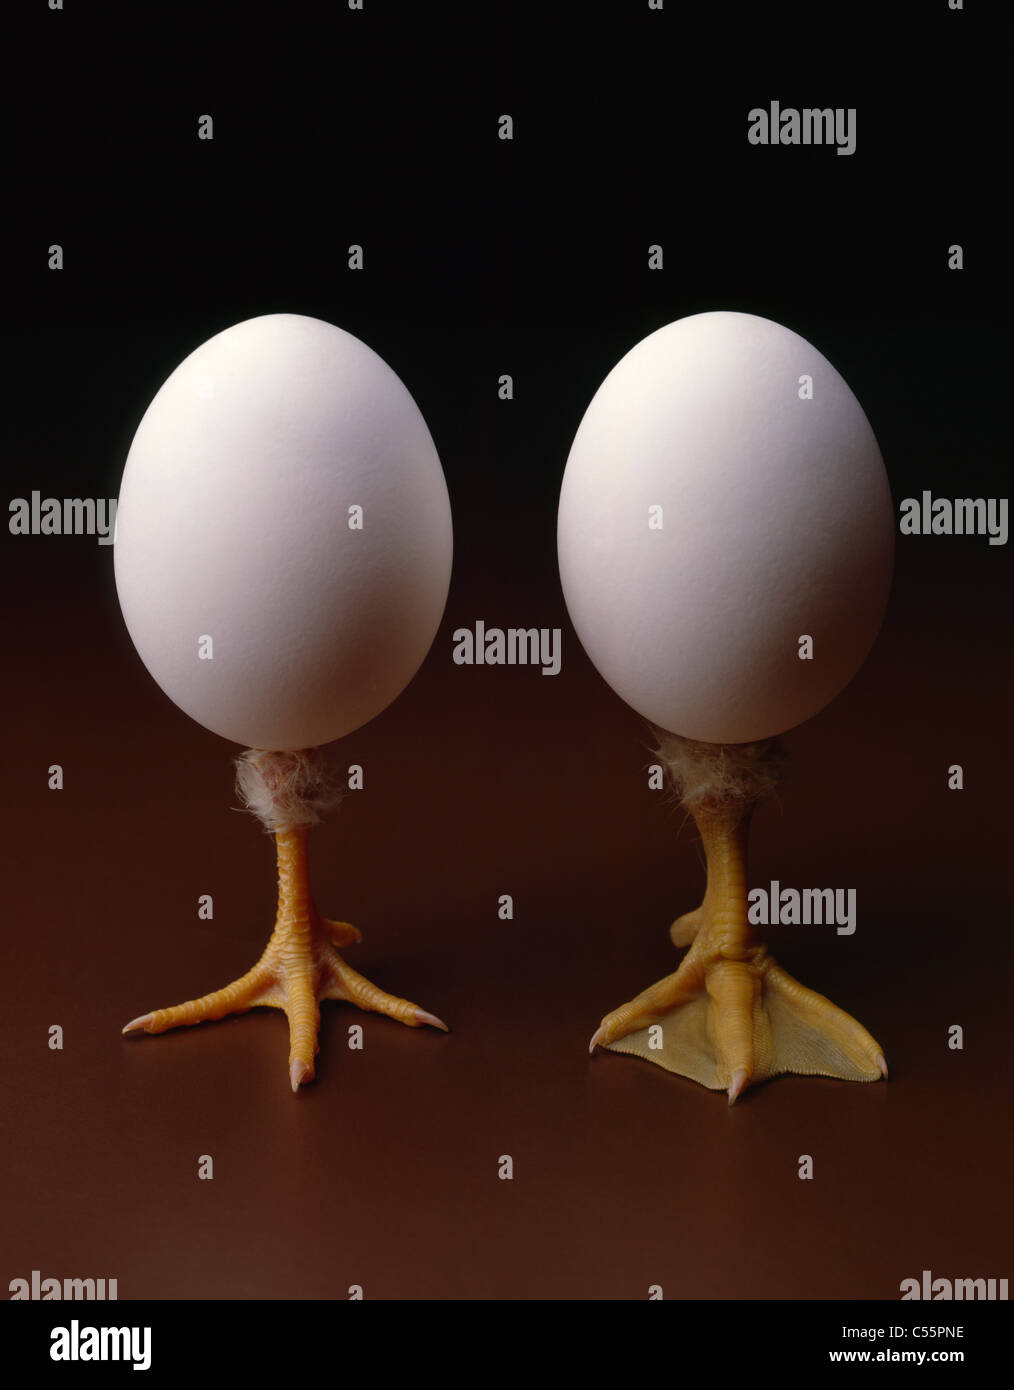 Duck egg and chicken egg with legs coming out on brown background, studio shot - Stock Image